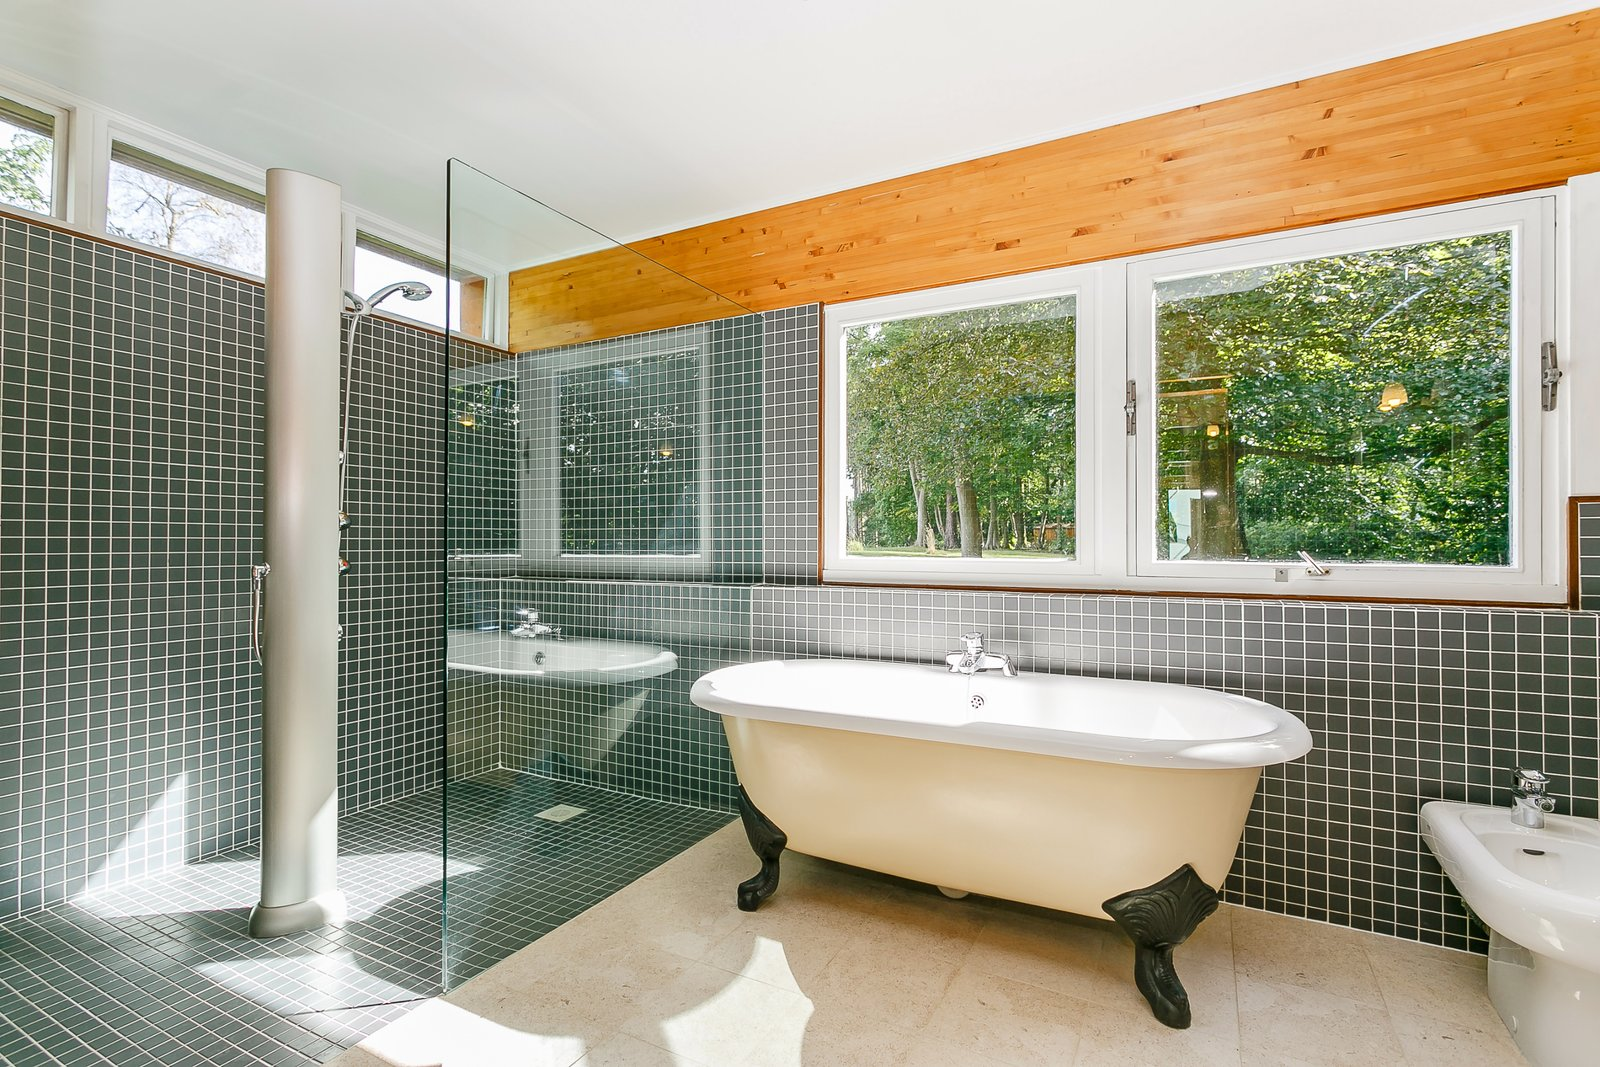 Bath, Freestanding, Open, Corner, and Ceramic Tile  Bath Corner Freestanding Ceramic Tile Photos from A Modernist Time Capsule by Erno Goldfinger Asks $4M